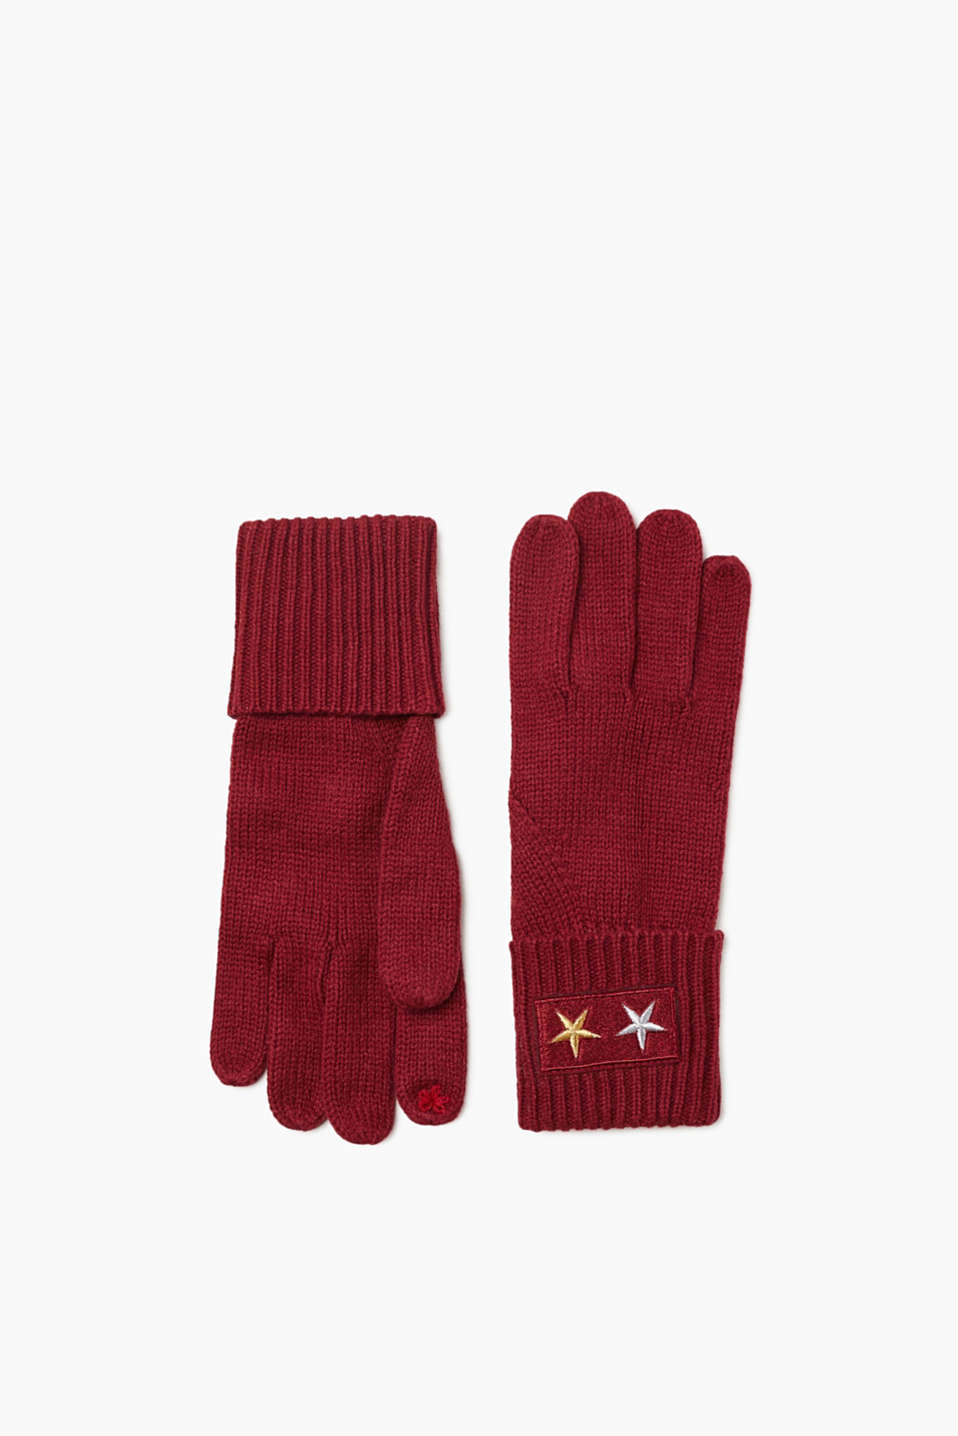 We love knitwear! These sporty gloves impress with their fine knit and sporty star detail.